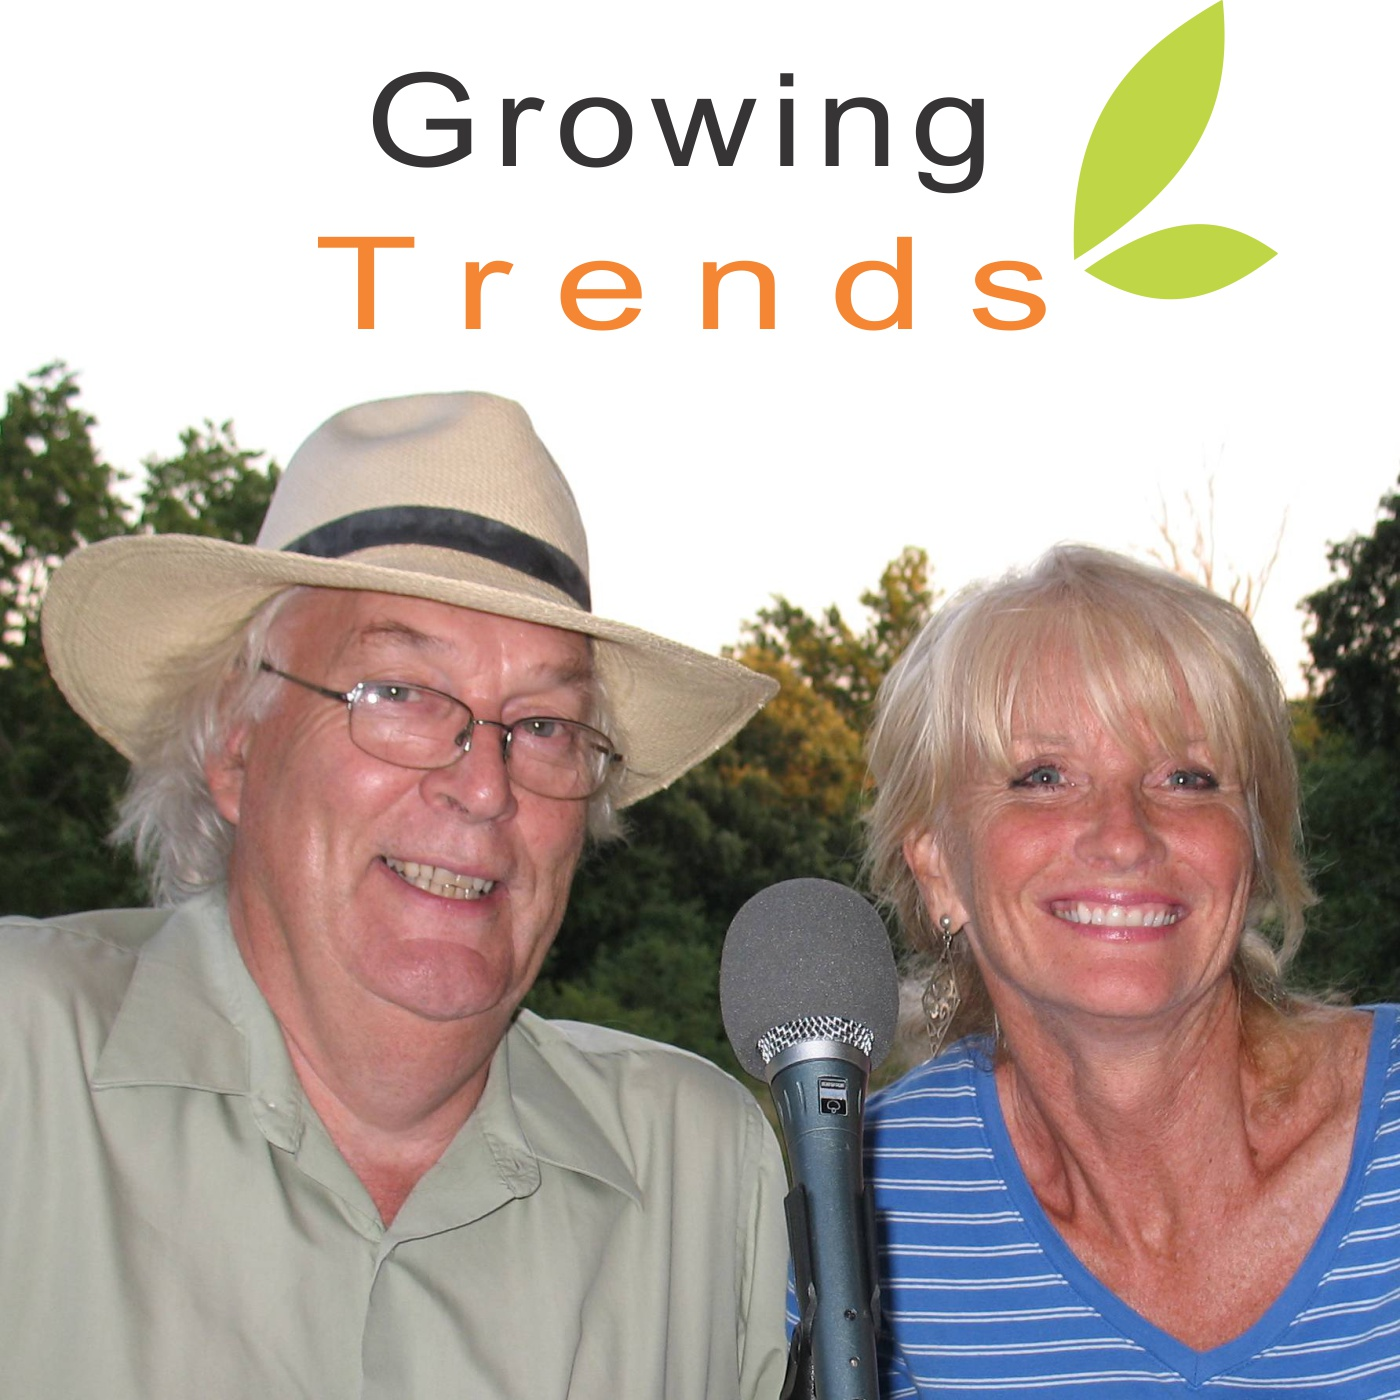 Growing trends new look and our first interview from a visit to China